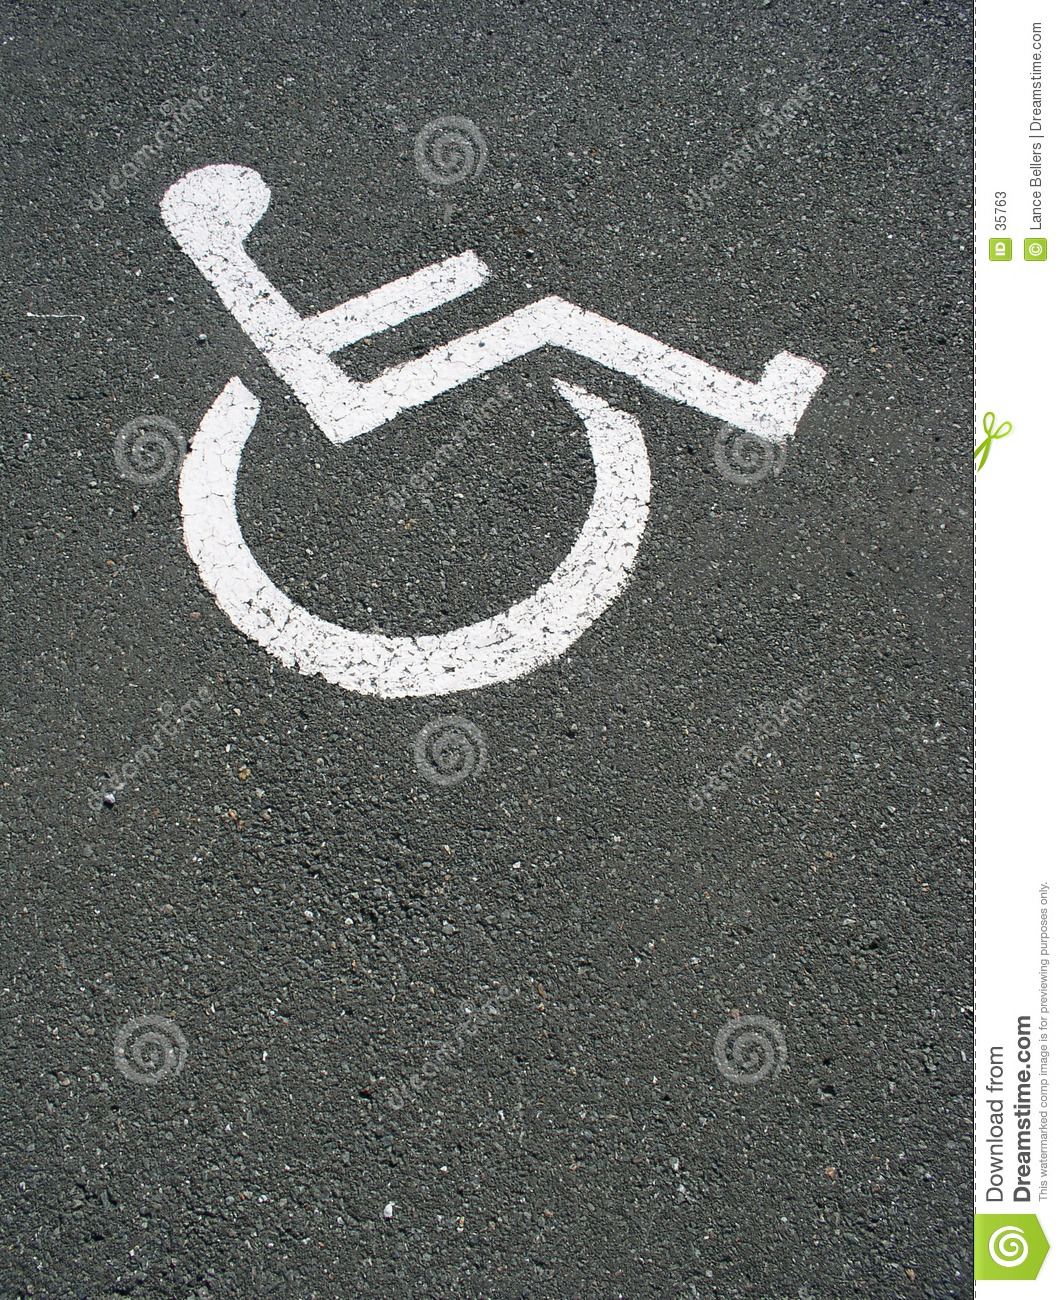 Diabled parking